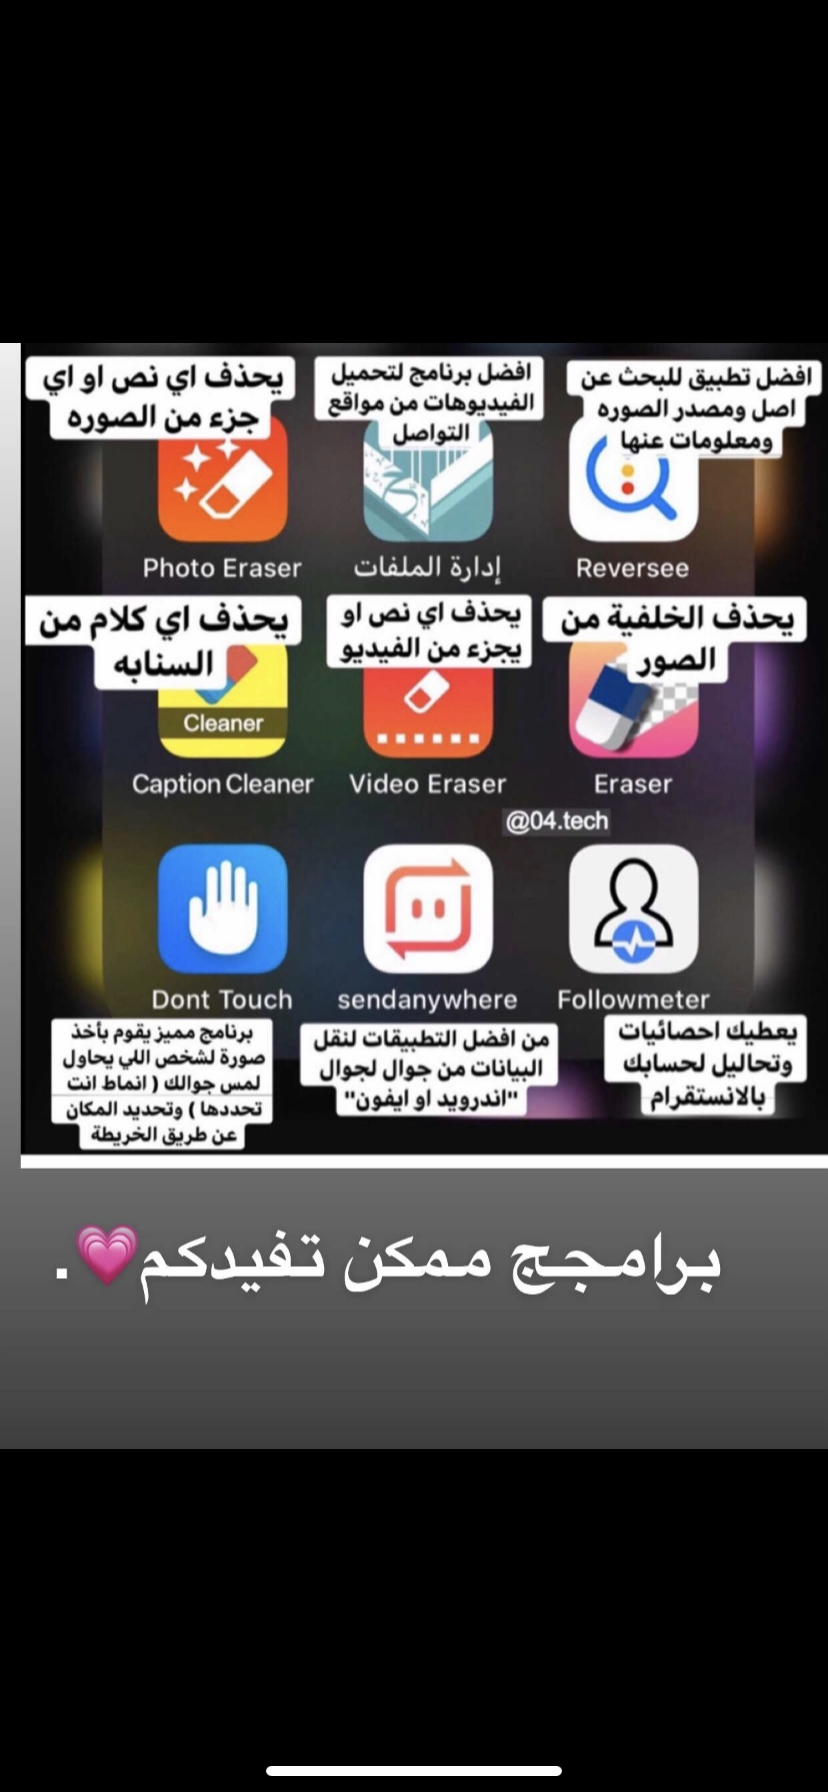 Pin By Mona El Roo7 On برامج ومواقع مهمه App Pictures Application Iphone Photo Editing Apps